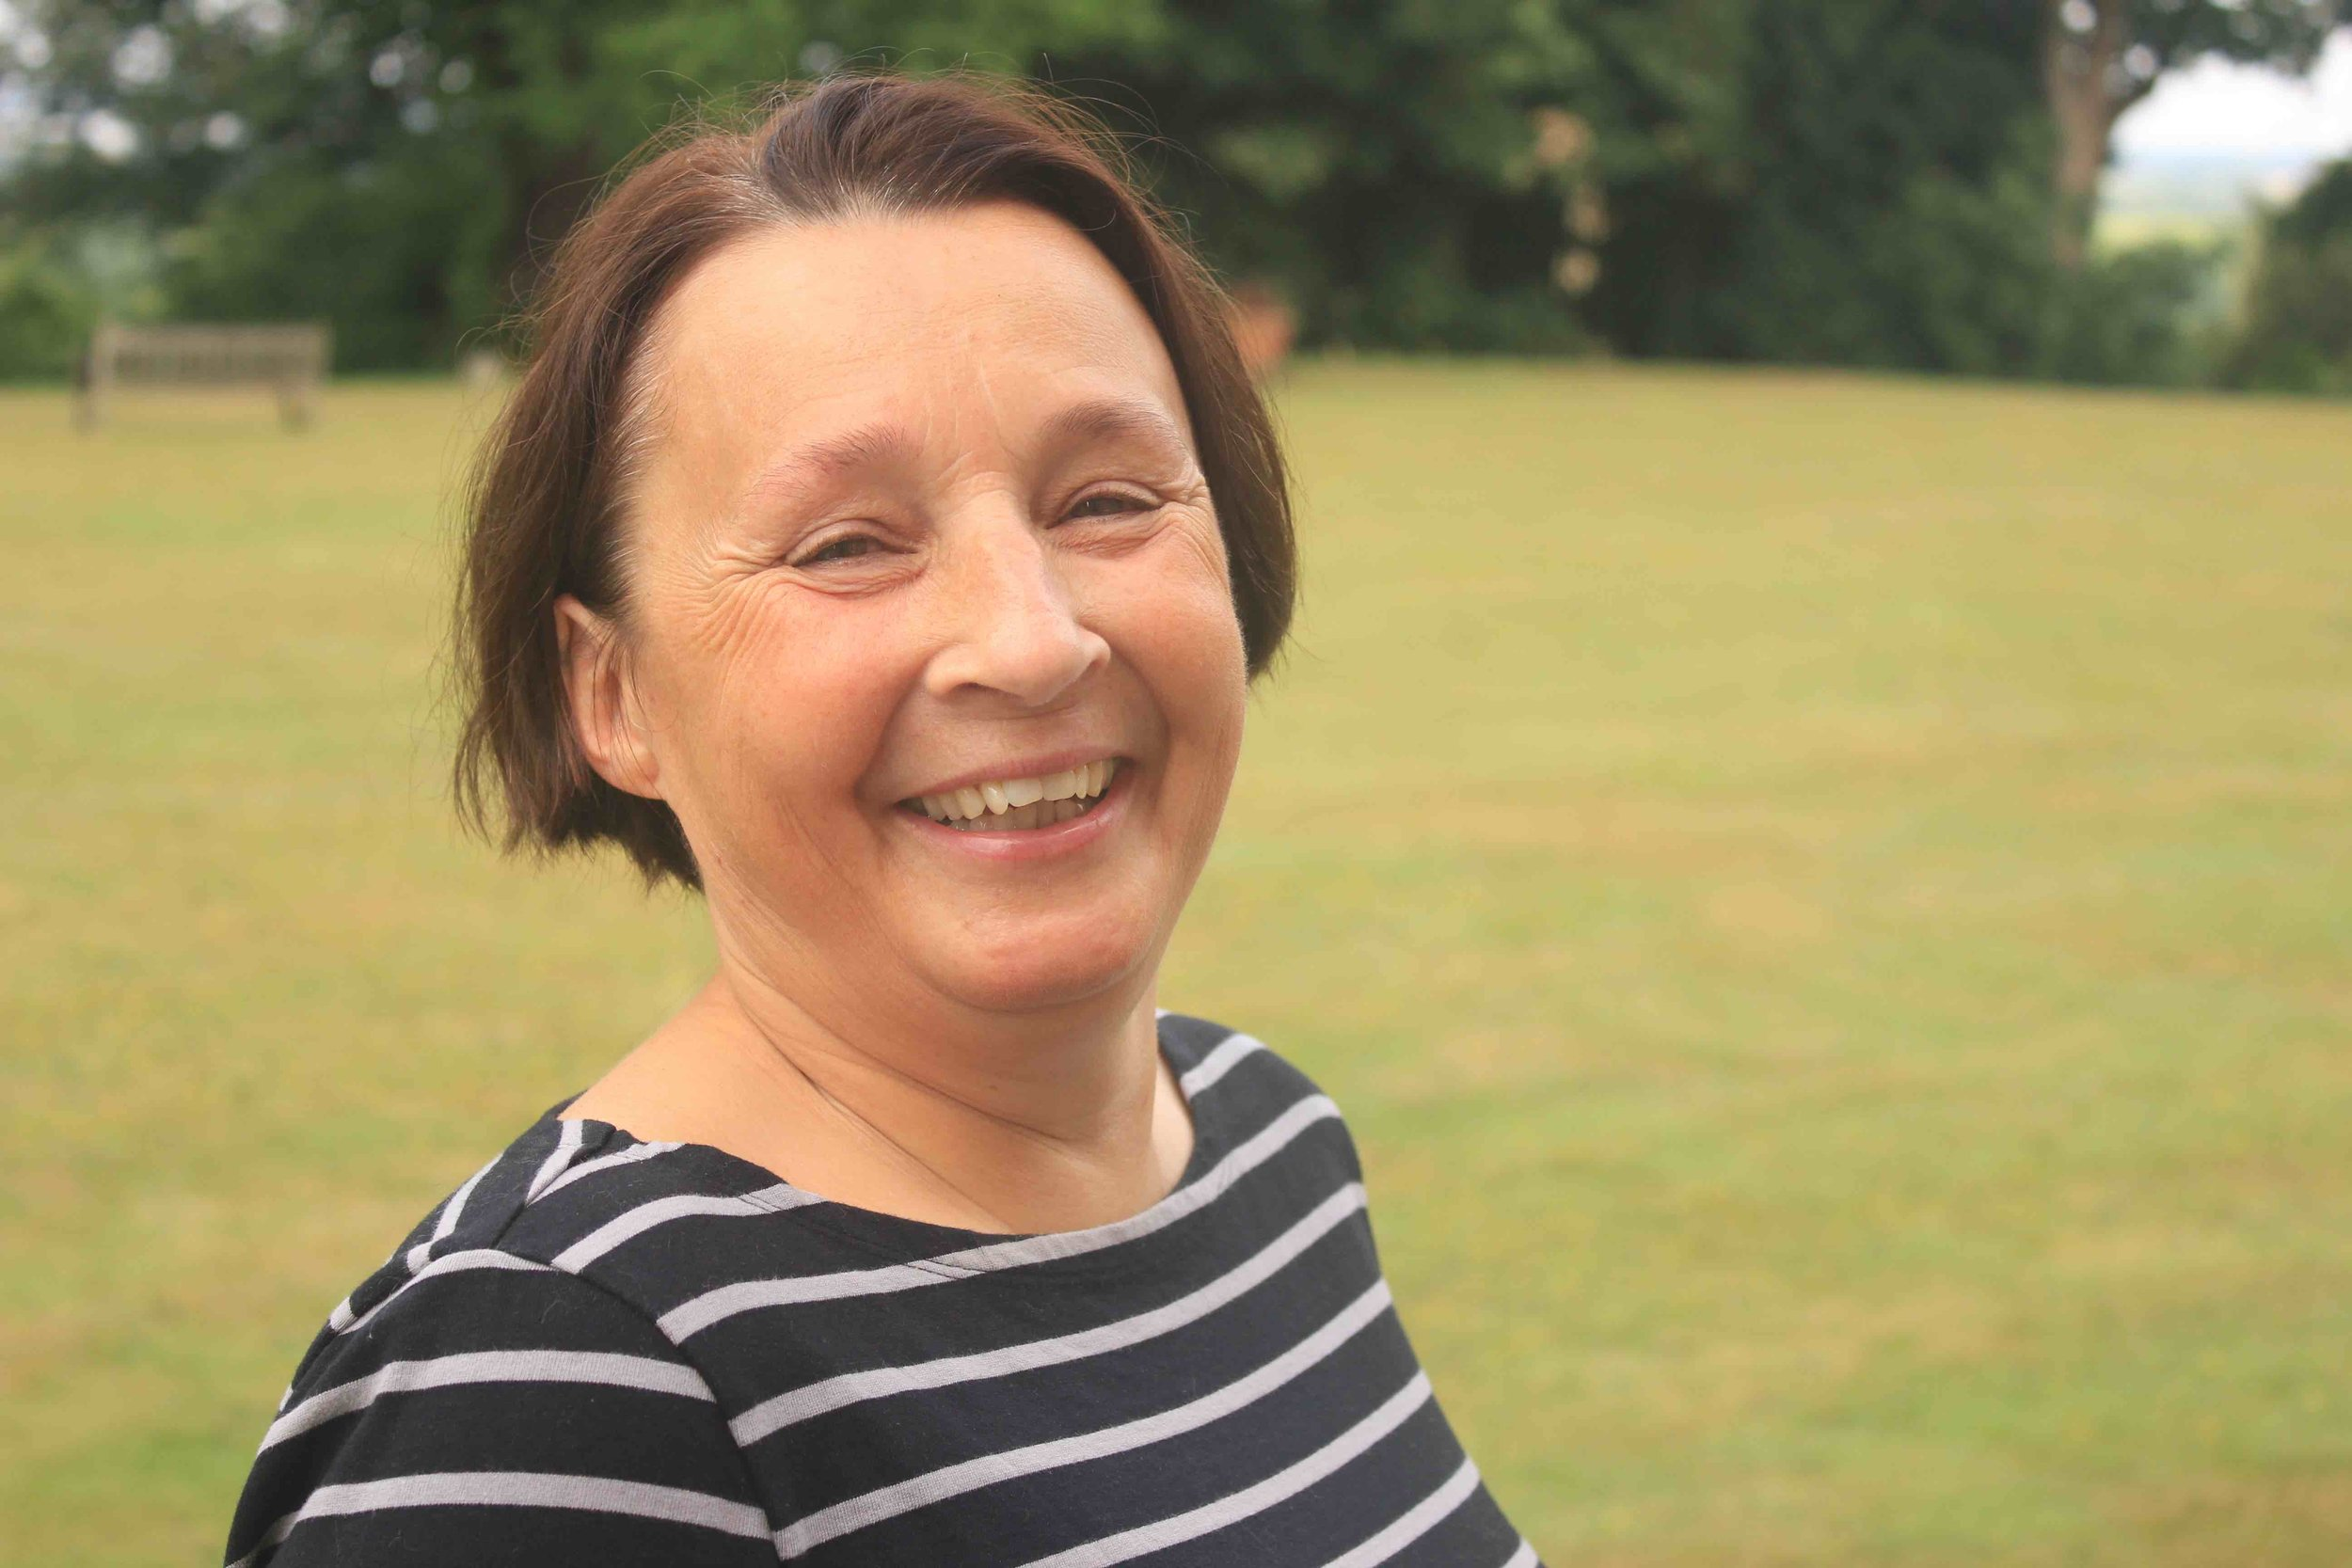 Clare Groves - Just Treatment patient leader